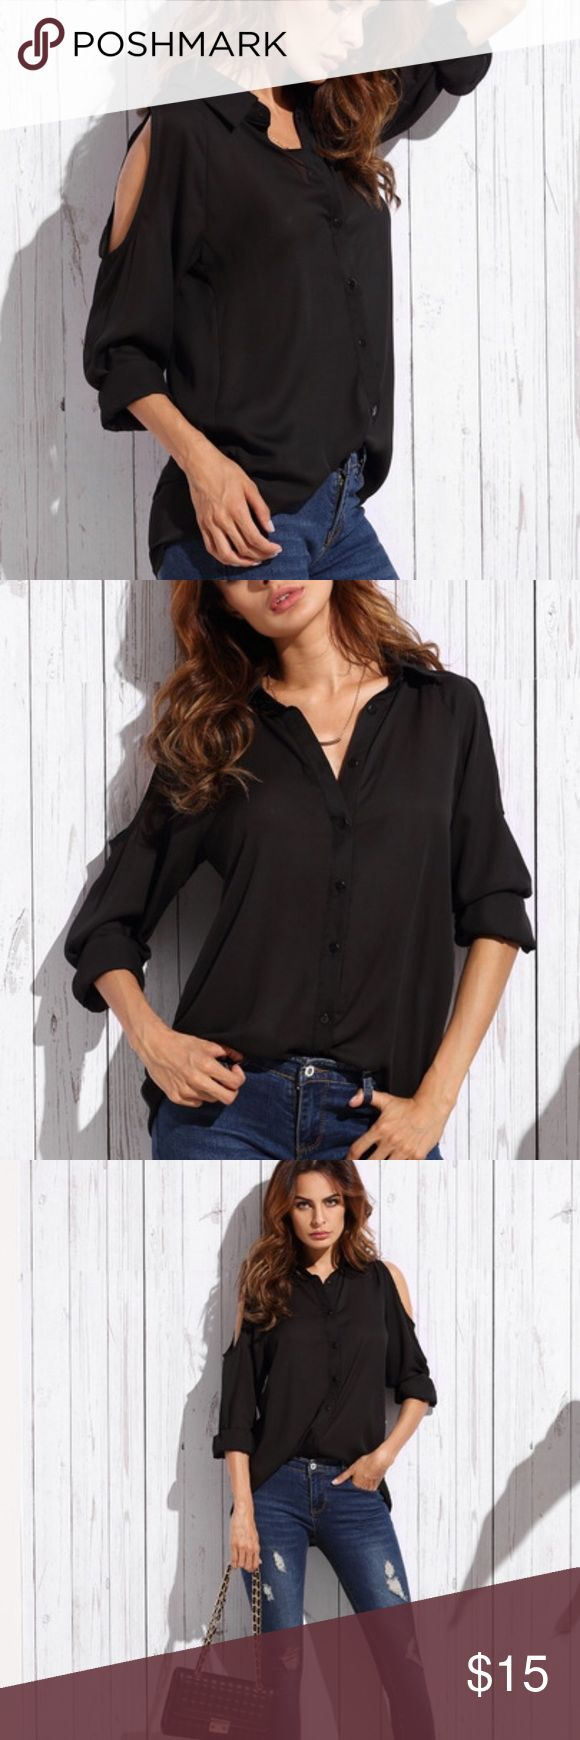 Black open shoulder chiffon blouse NWOT long sleeve open shoulder button front black chiffon blouse. No brand name or tag, just the size tag-small. Never worn Tops Blouses